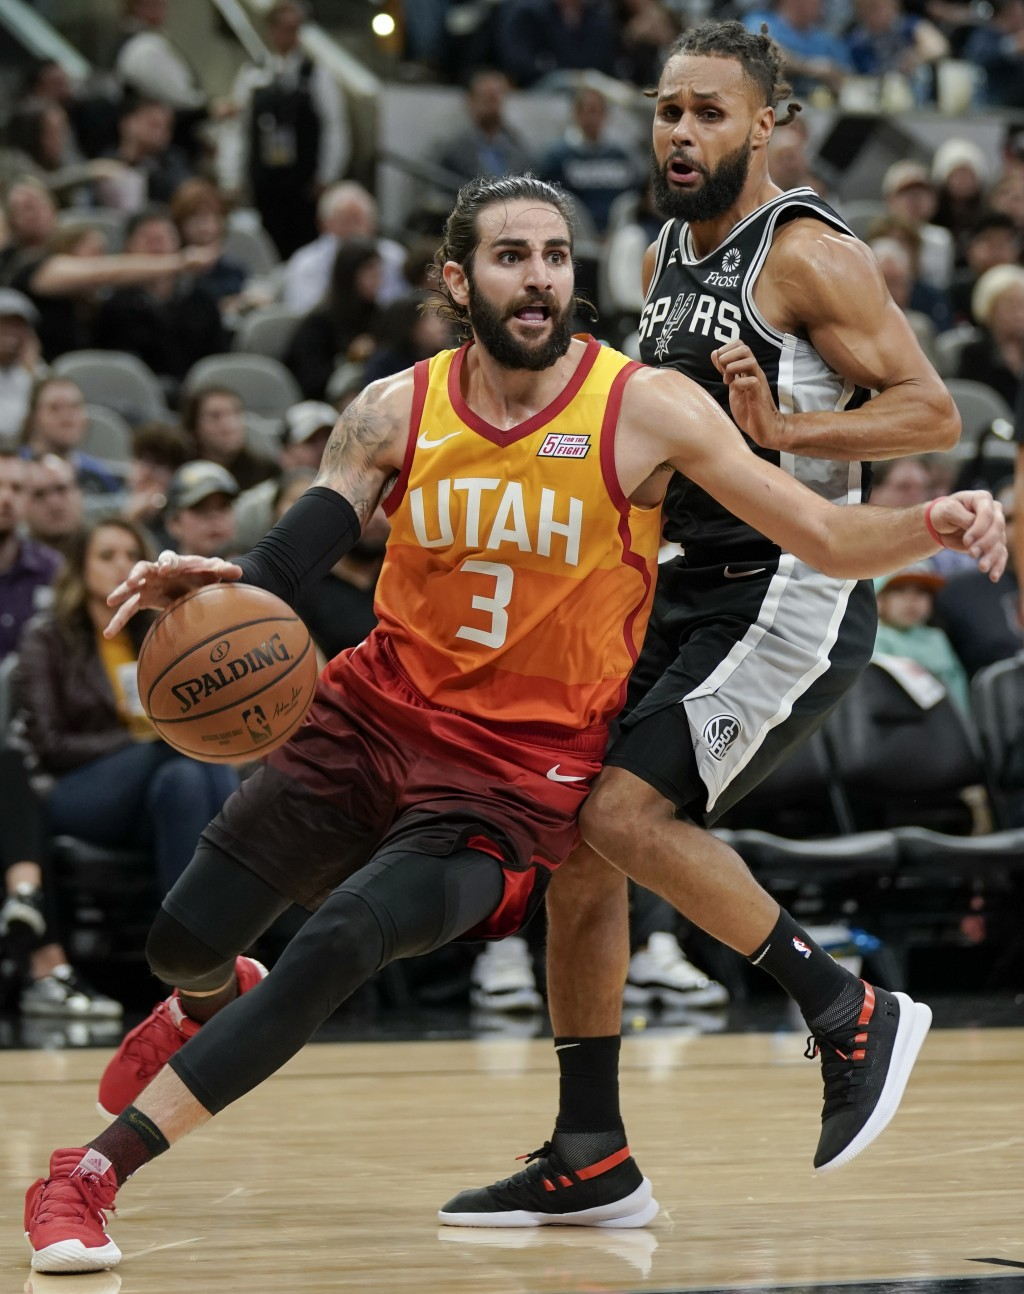 Utah Jazz guard Ricky Rubio (3) drives around San Antonio Spurs guard Patty Mills during the second half of an NBA basketball game, Sunday, Dec. 9, 20